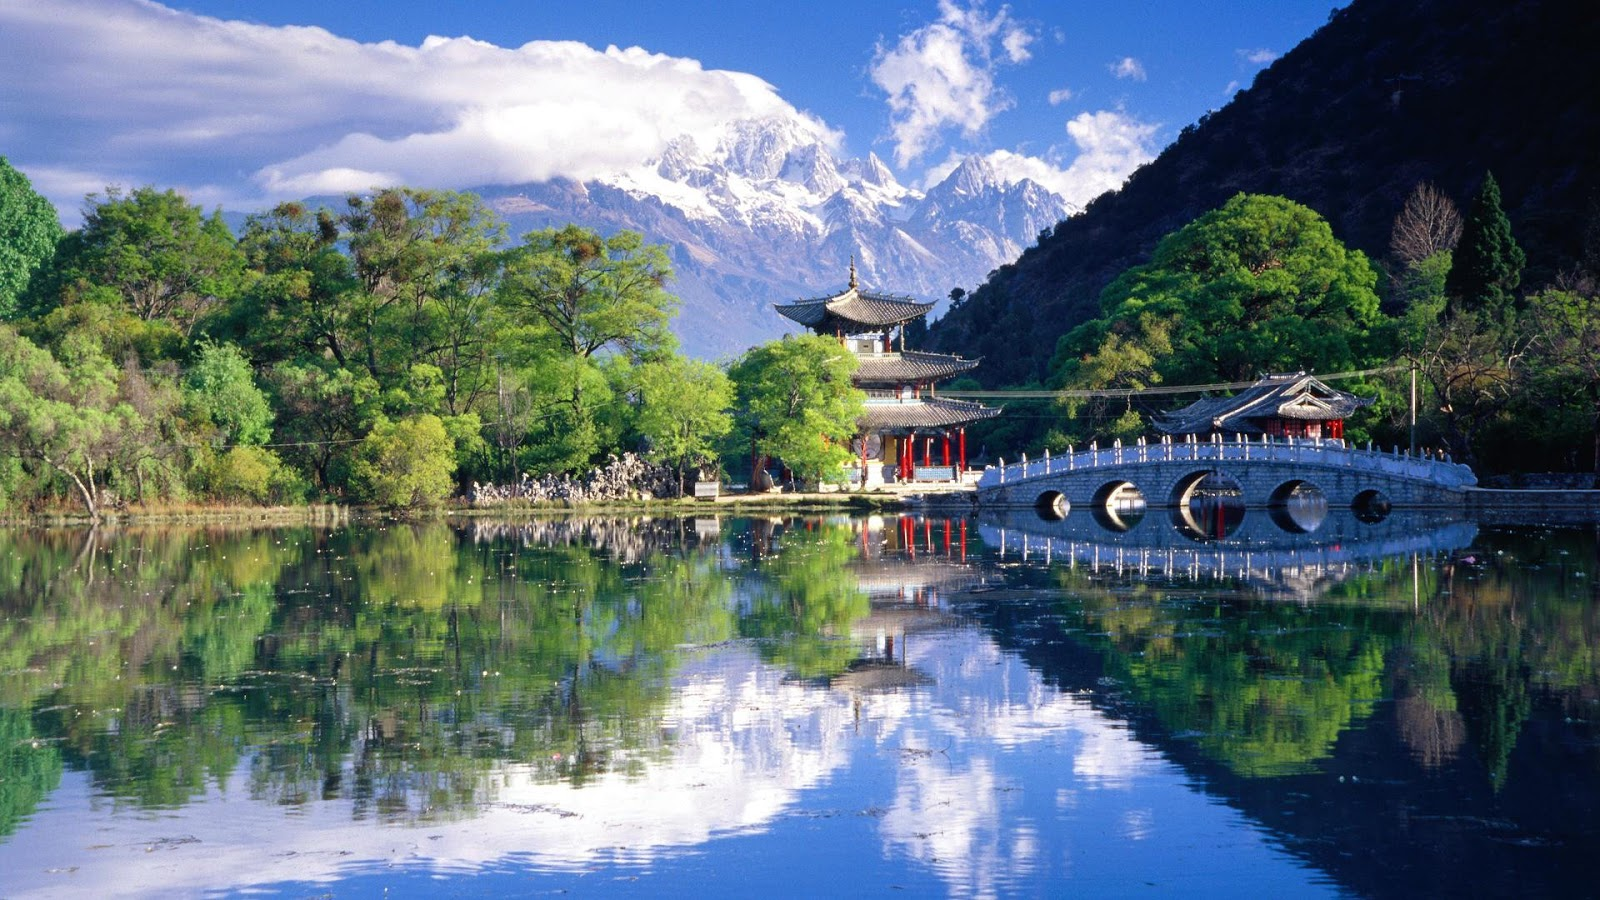 chinese hd background desktop - photo #34